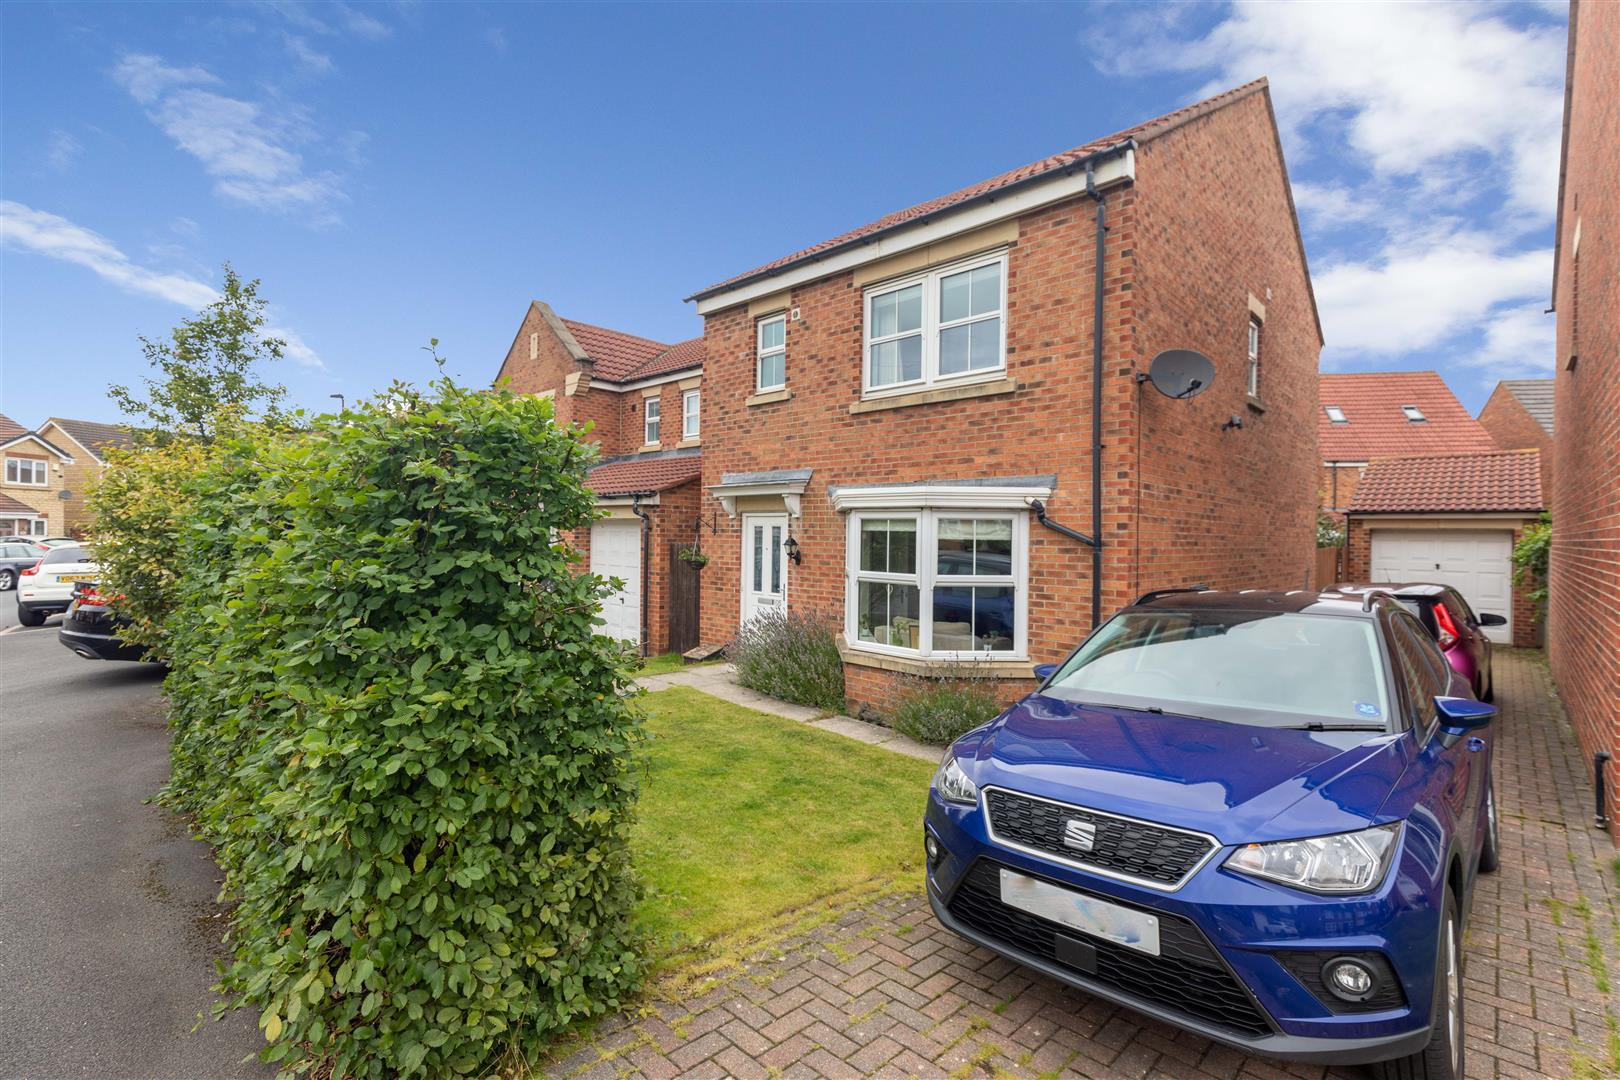 3 bed detached house for sale in Newcastle Upon Tyne, NE27 0BD 0